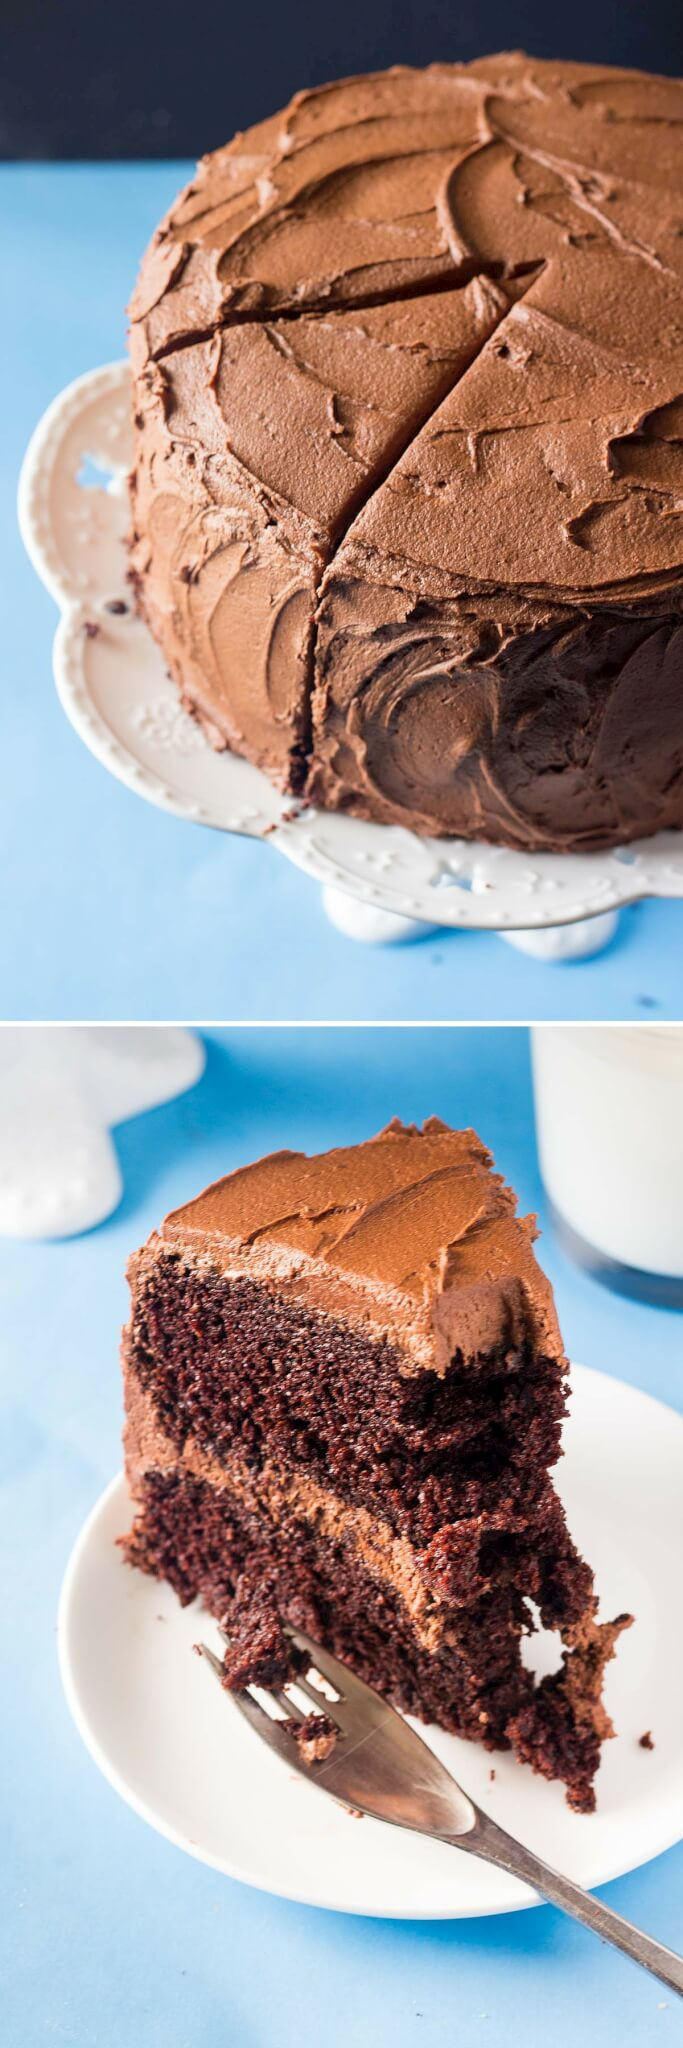 Double Chocolate Layer Cake - Just so Tasty